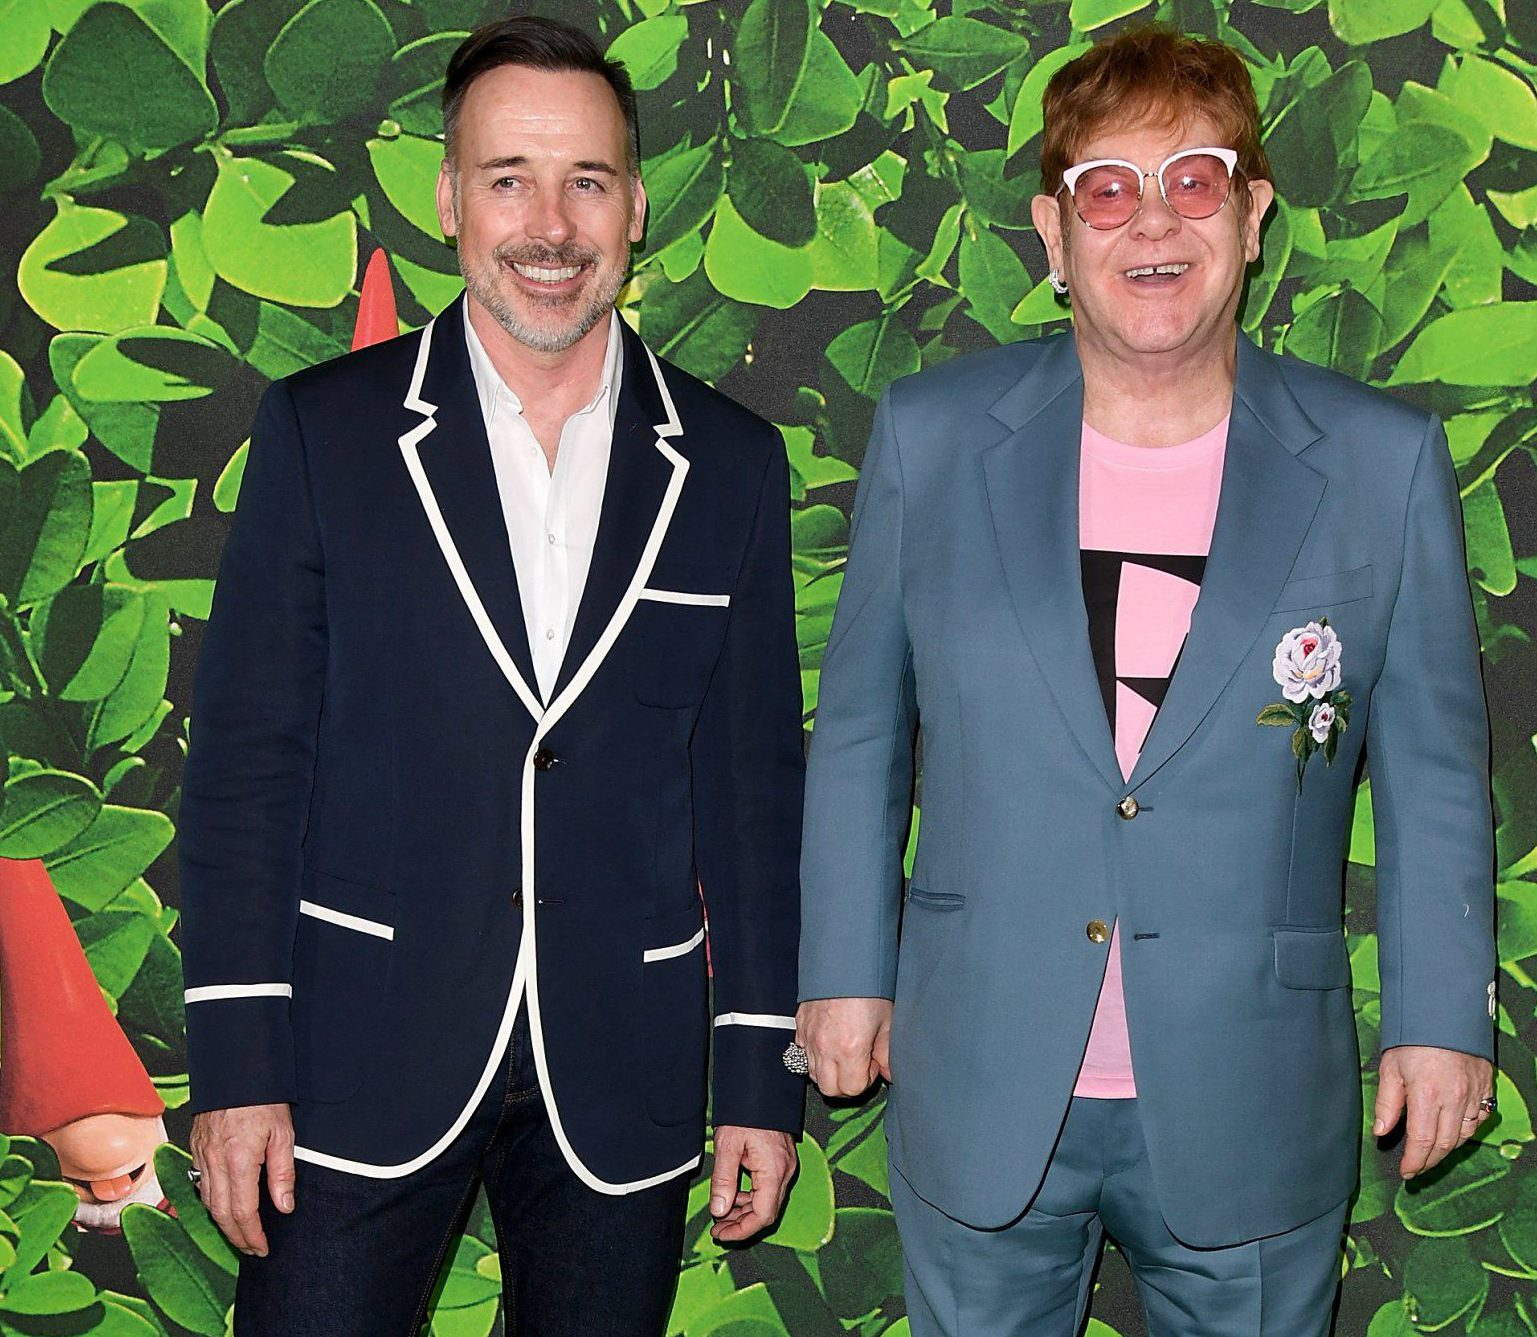 LONDON, ENGLAND - APRIL 22: David Furnish (L) and Elton John attend the 'Sherlock Gnomes' London Family Gala hosted by Sir Elton John and David Furnish at Cineworld Leicester Square on April 22, 2018 in London, England. (Photo by Stuart C. Wilson/Getty Images for Paramount Pictures)